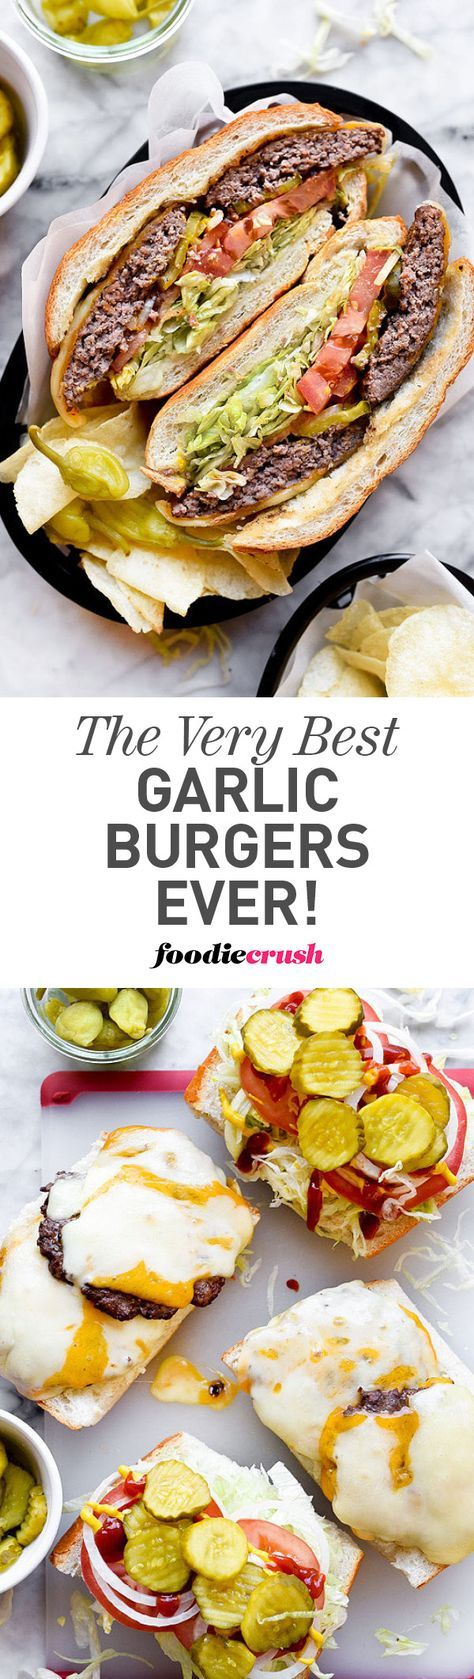 These world famous garlic burgers have just three seasonings and a legion of fans, and are simply one of the very best burgers you'll ever bite into